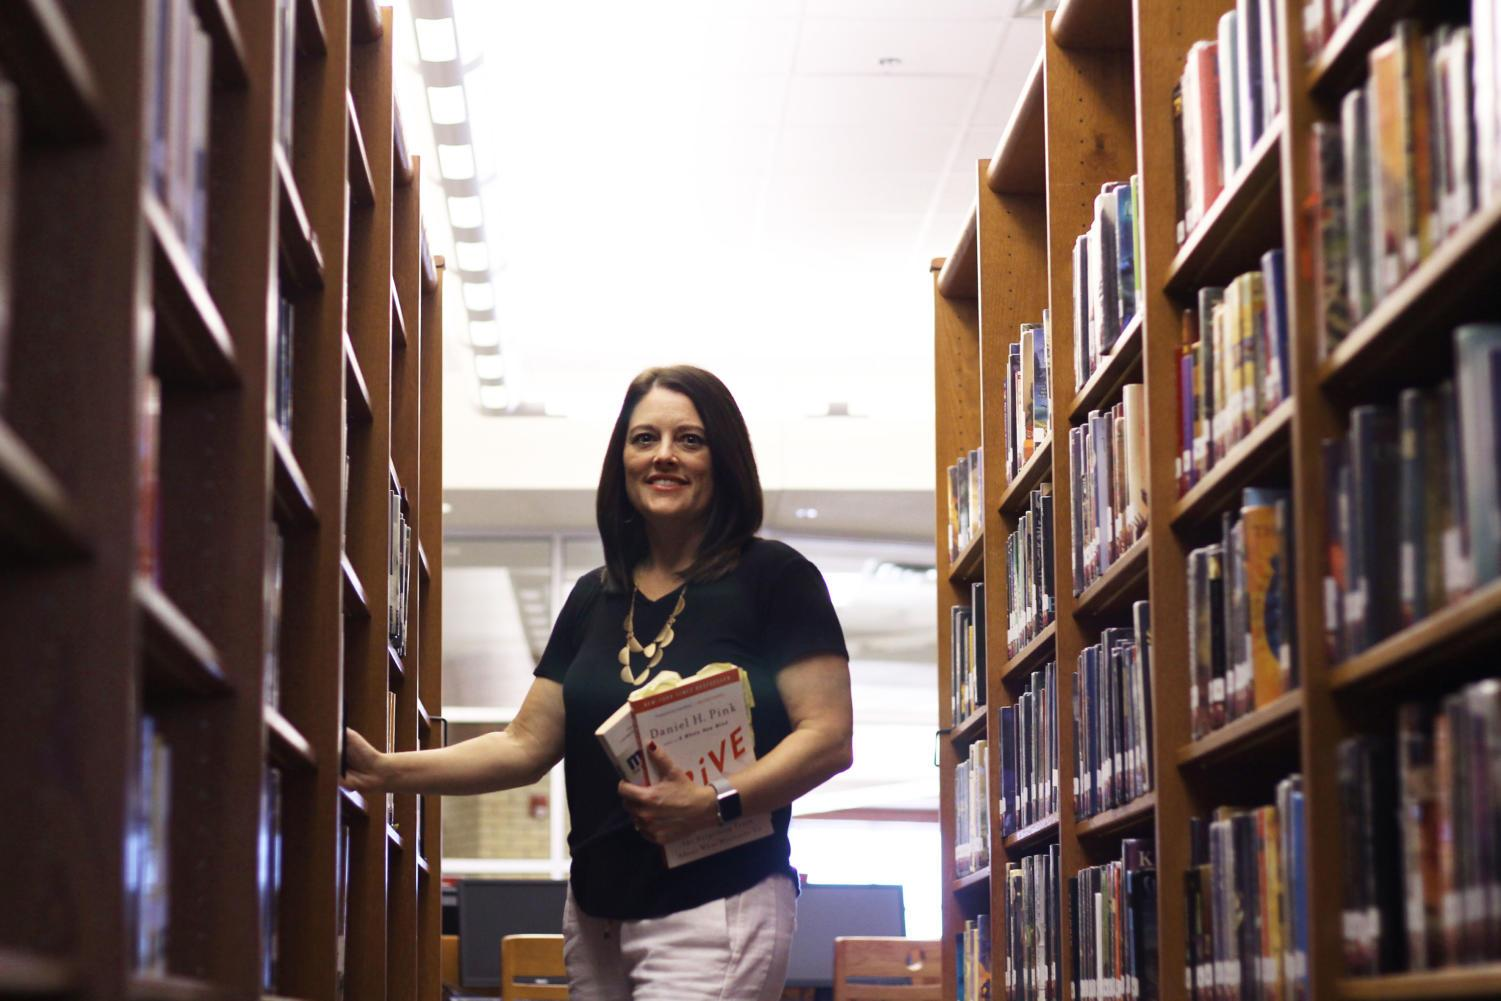 Heather Barr takes over the role as Library Media Specialist.